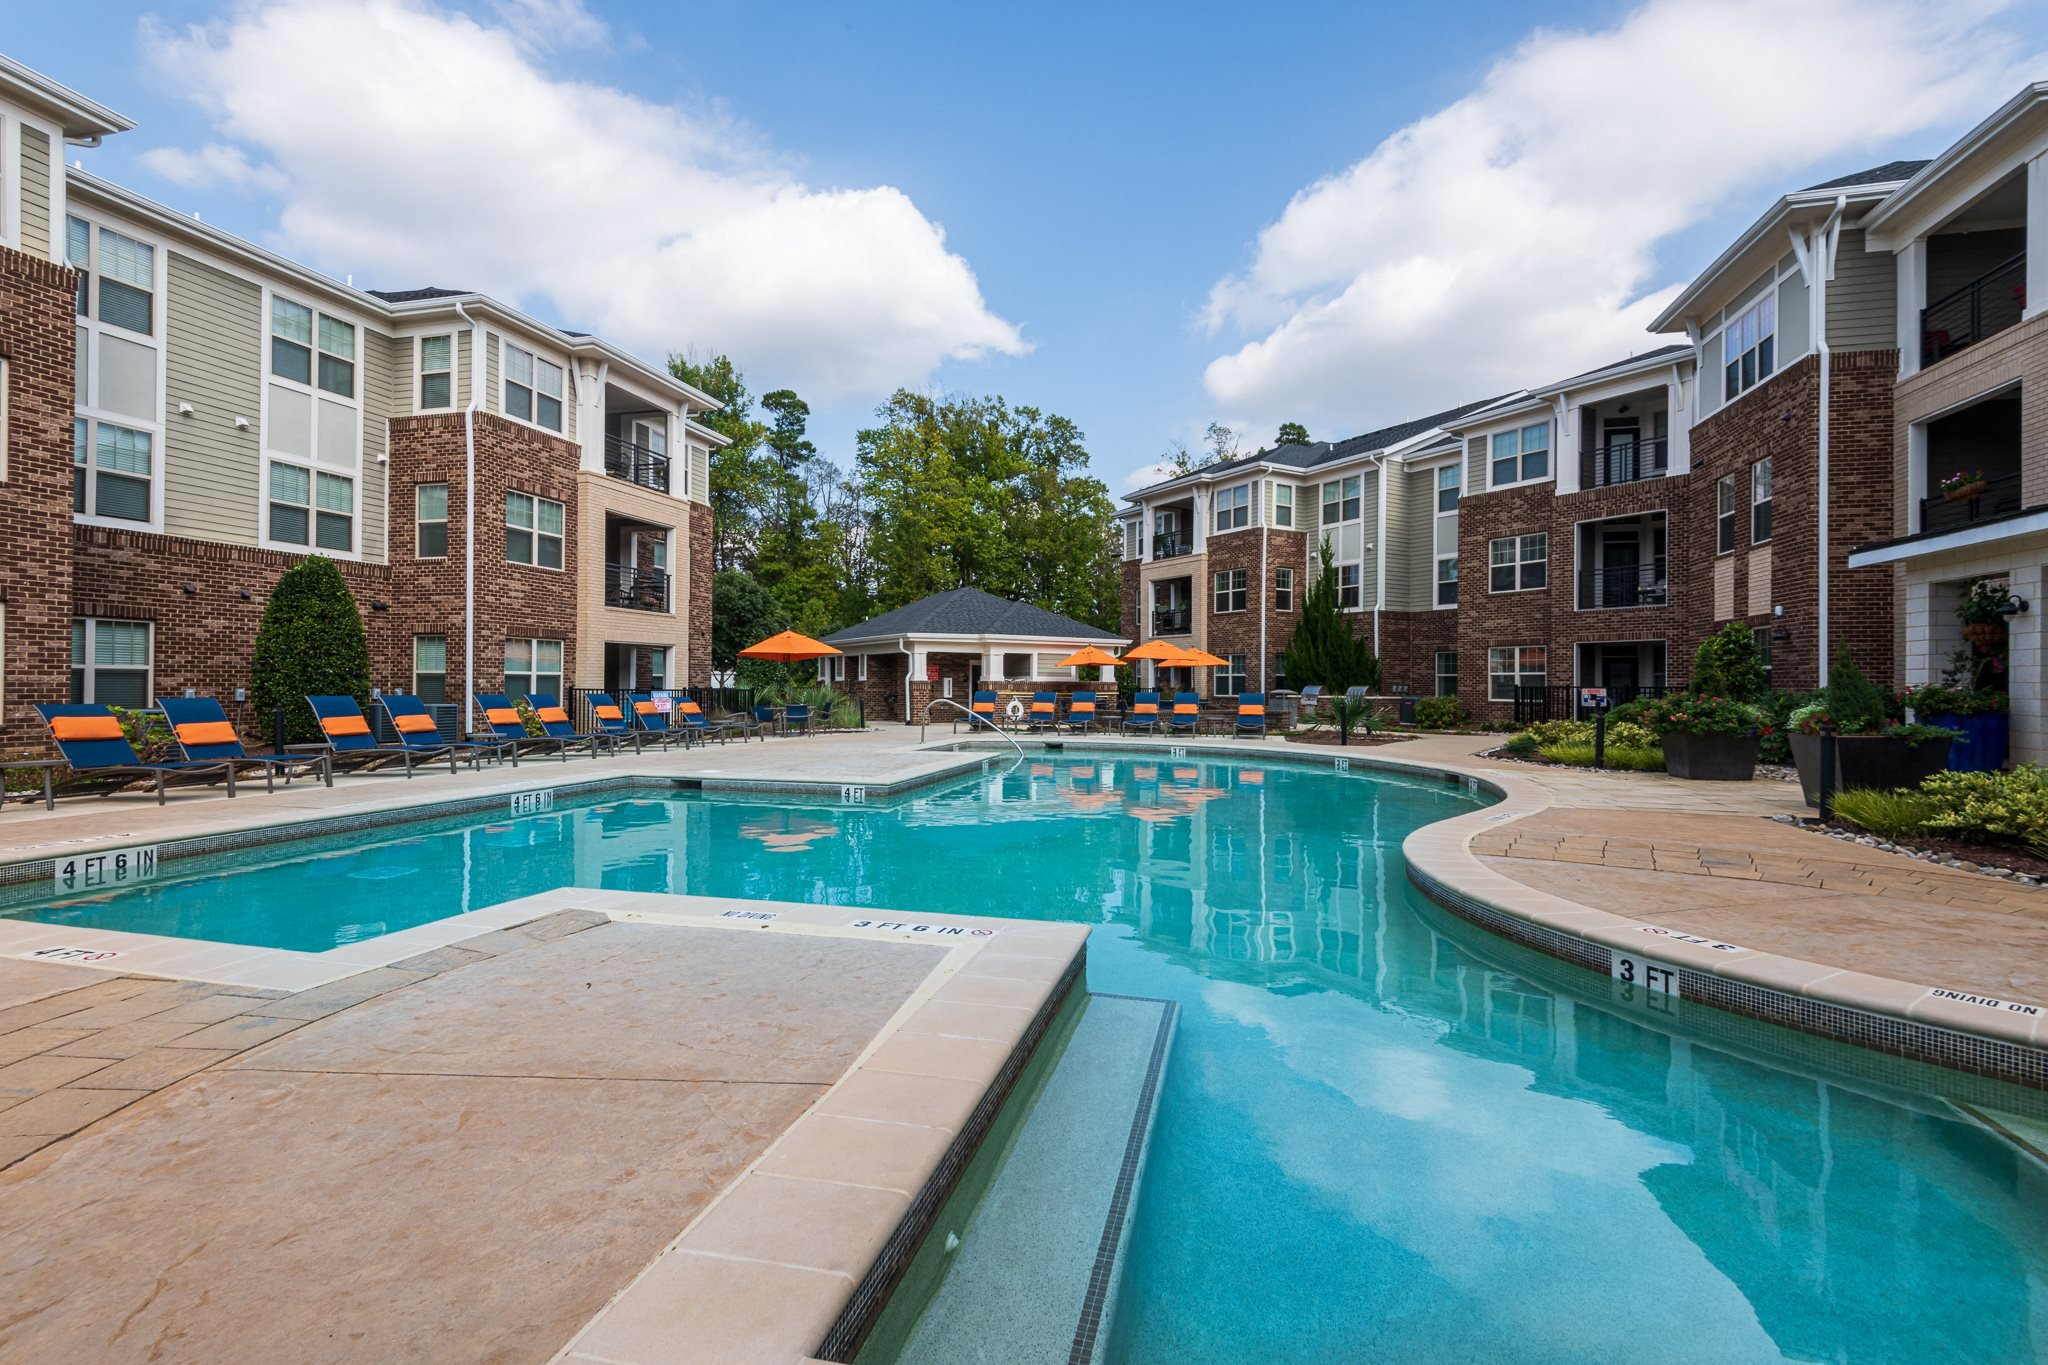 Swimming Pool With Relaxing Sundecks at The Village at Marquee Station, Fuquay-Varina, NC, 27526